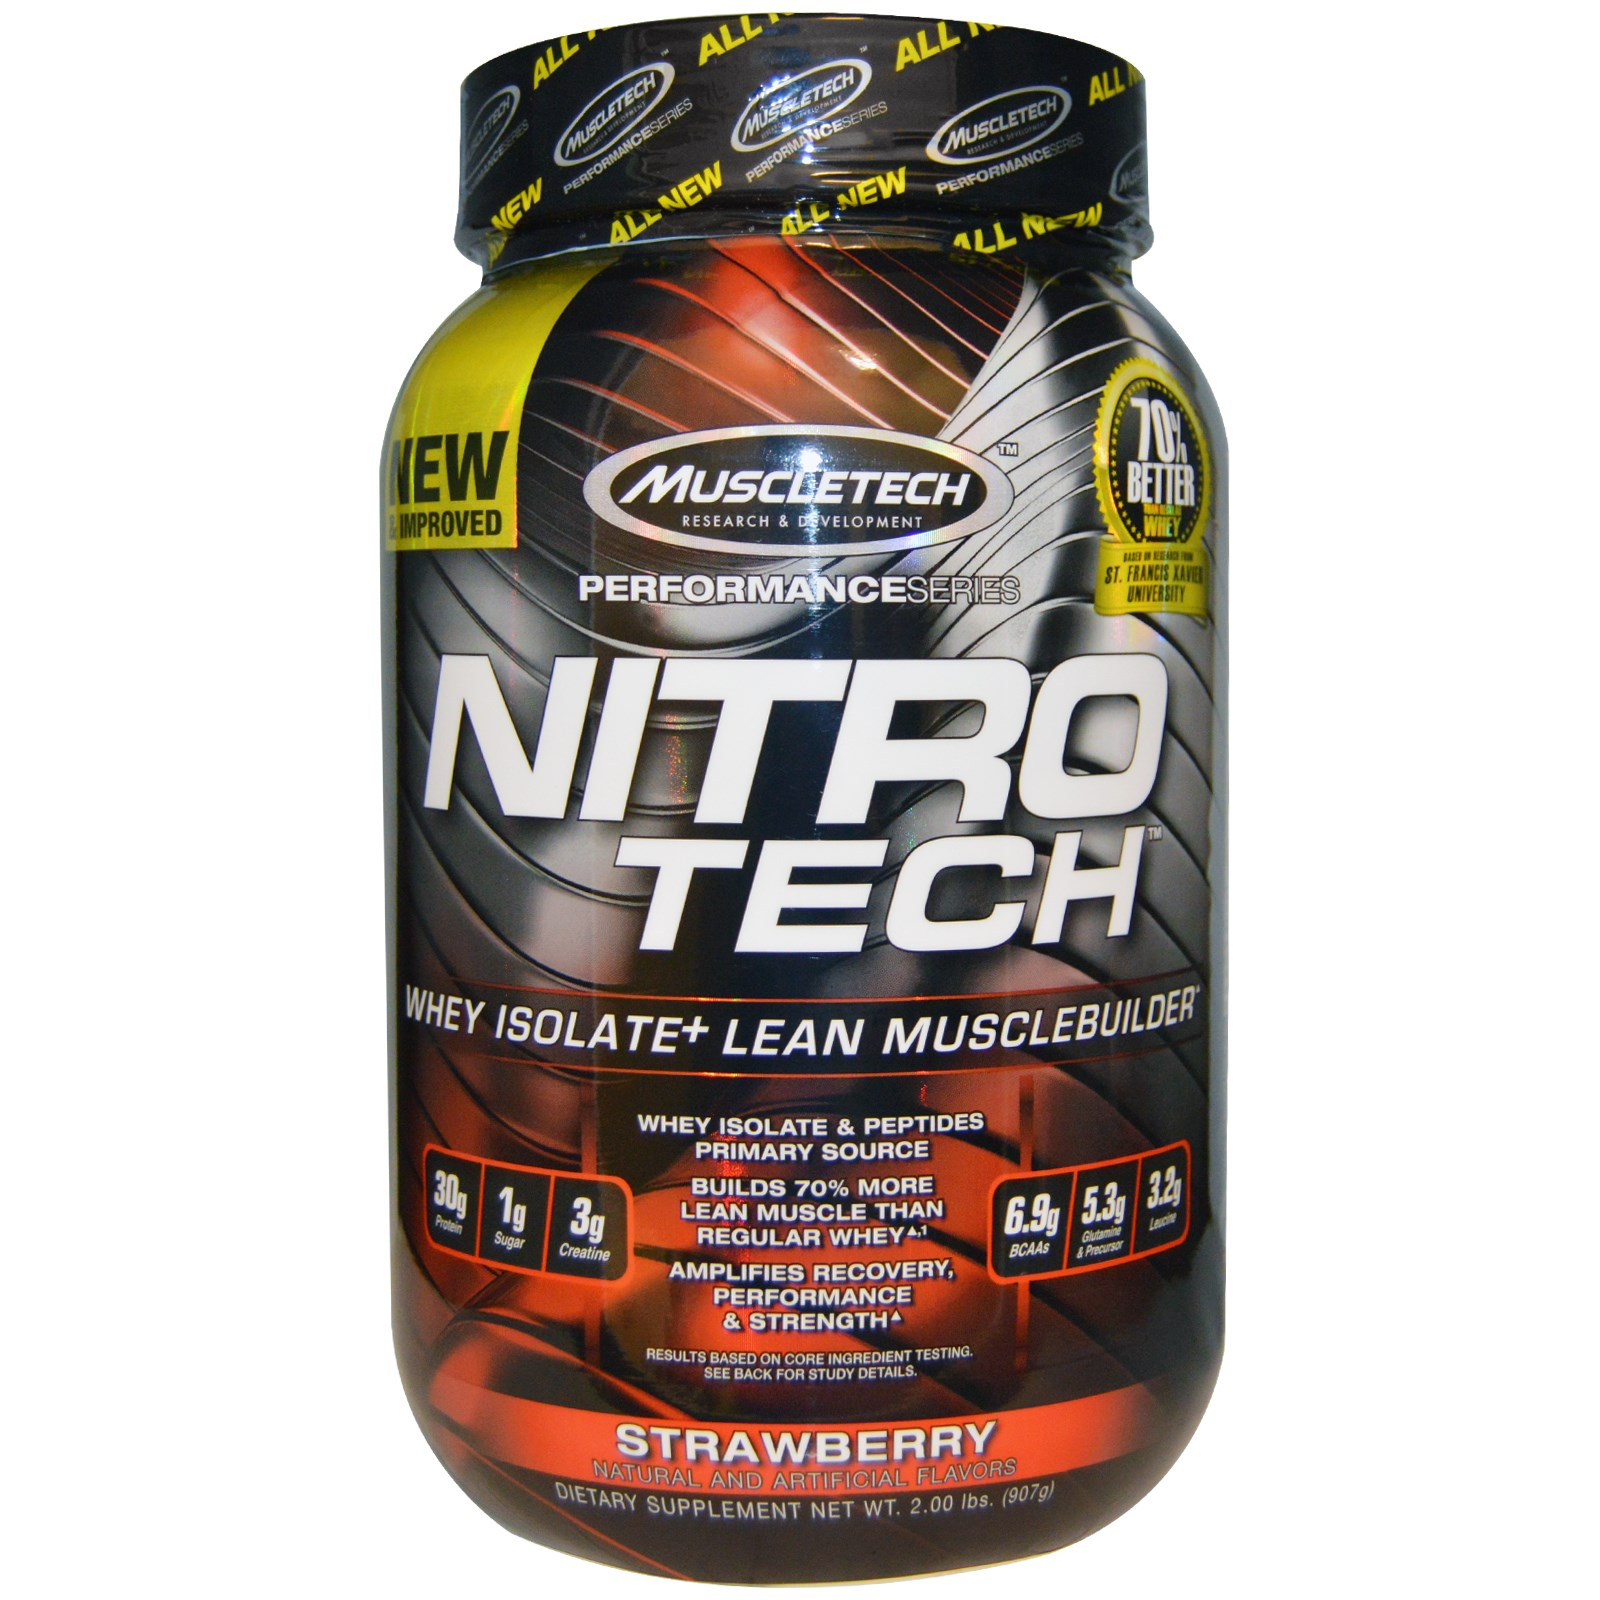 Nitrotech Muscletech Whey Protein Image